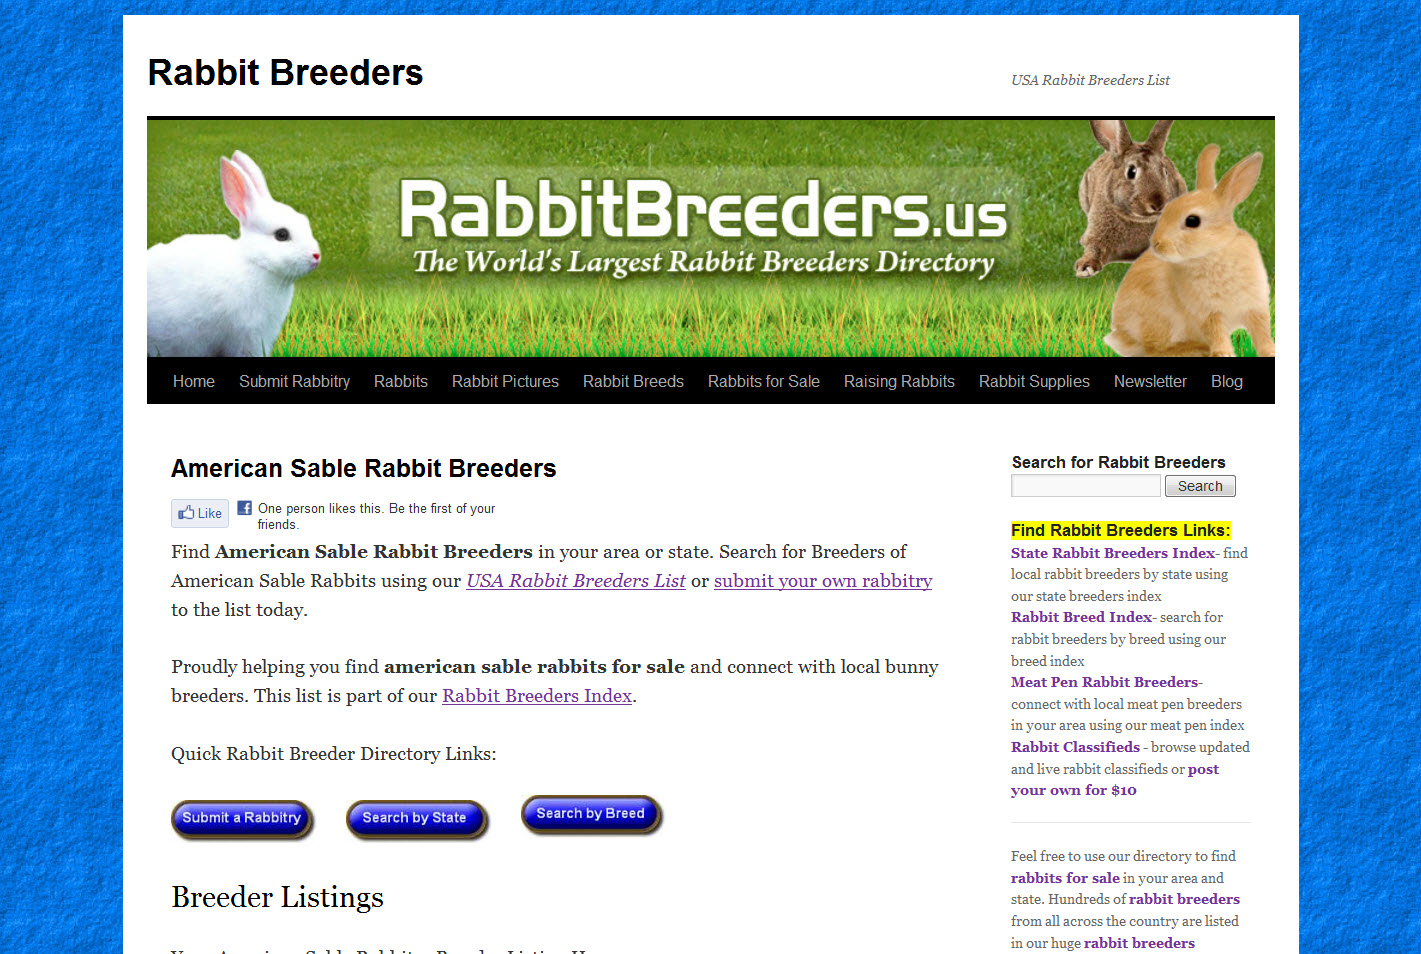 American Sable Rabbits for Sale